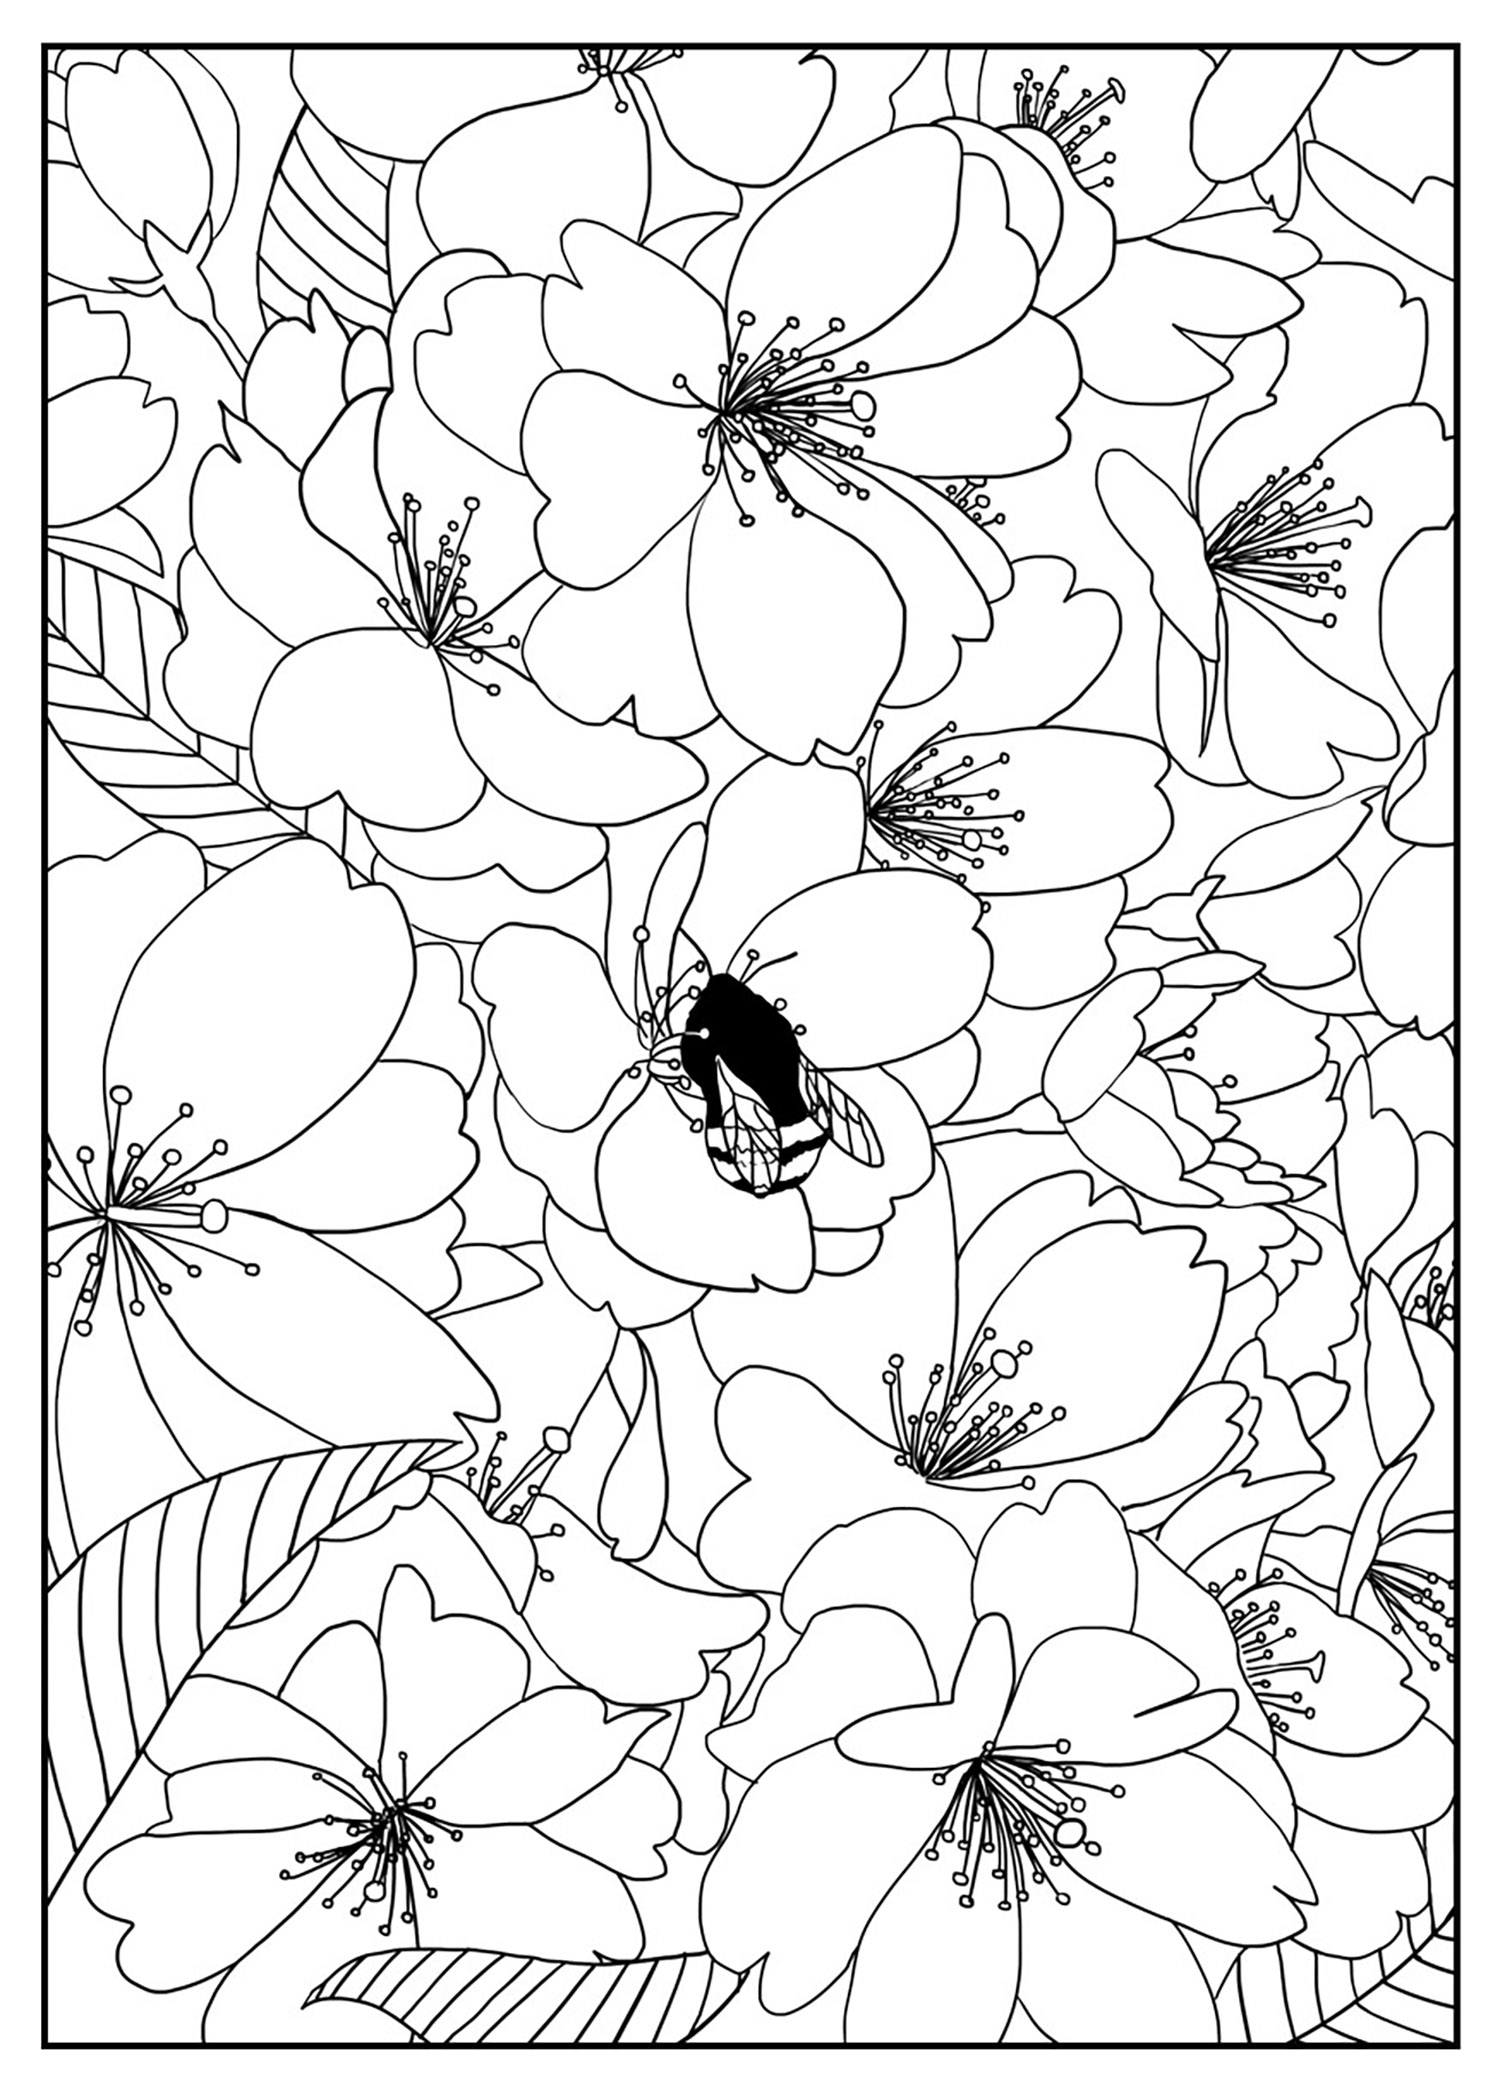 free coloring patterns floral pattern coloring page free printable coloring pages free coloring patterns